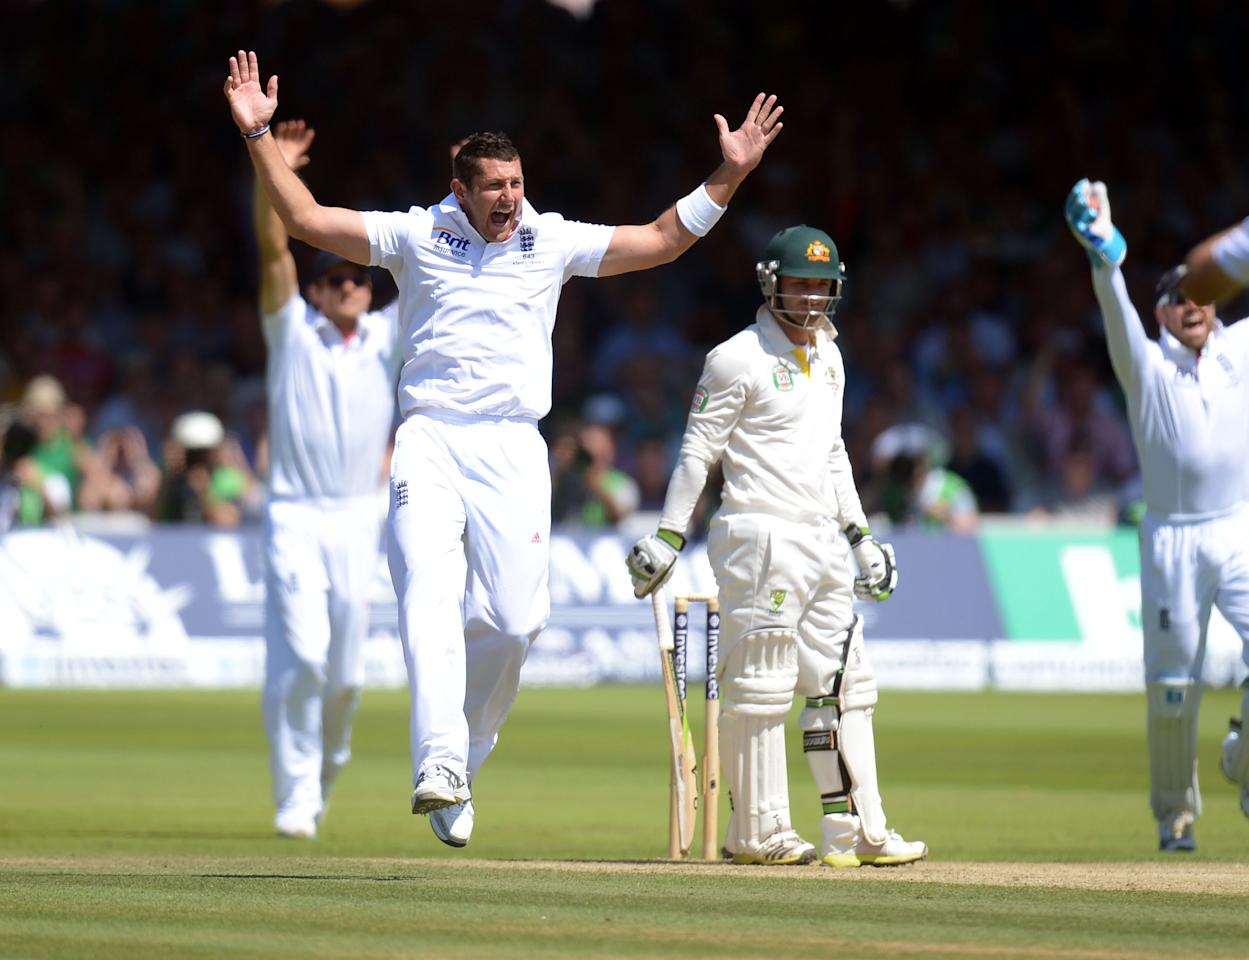 England's Tim Bresnan celebrates taking the wicket of Australia's Phil Hughes on day two of the Second Investec Ashes Test at Lord's Cricket Ground, London.